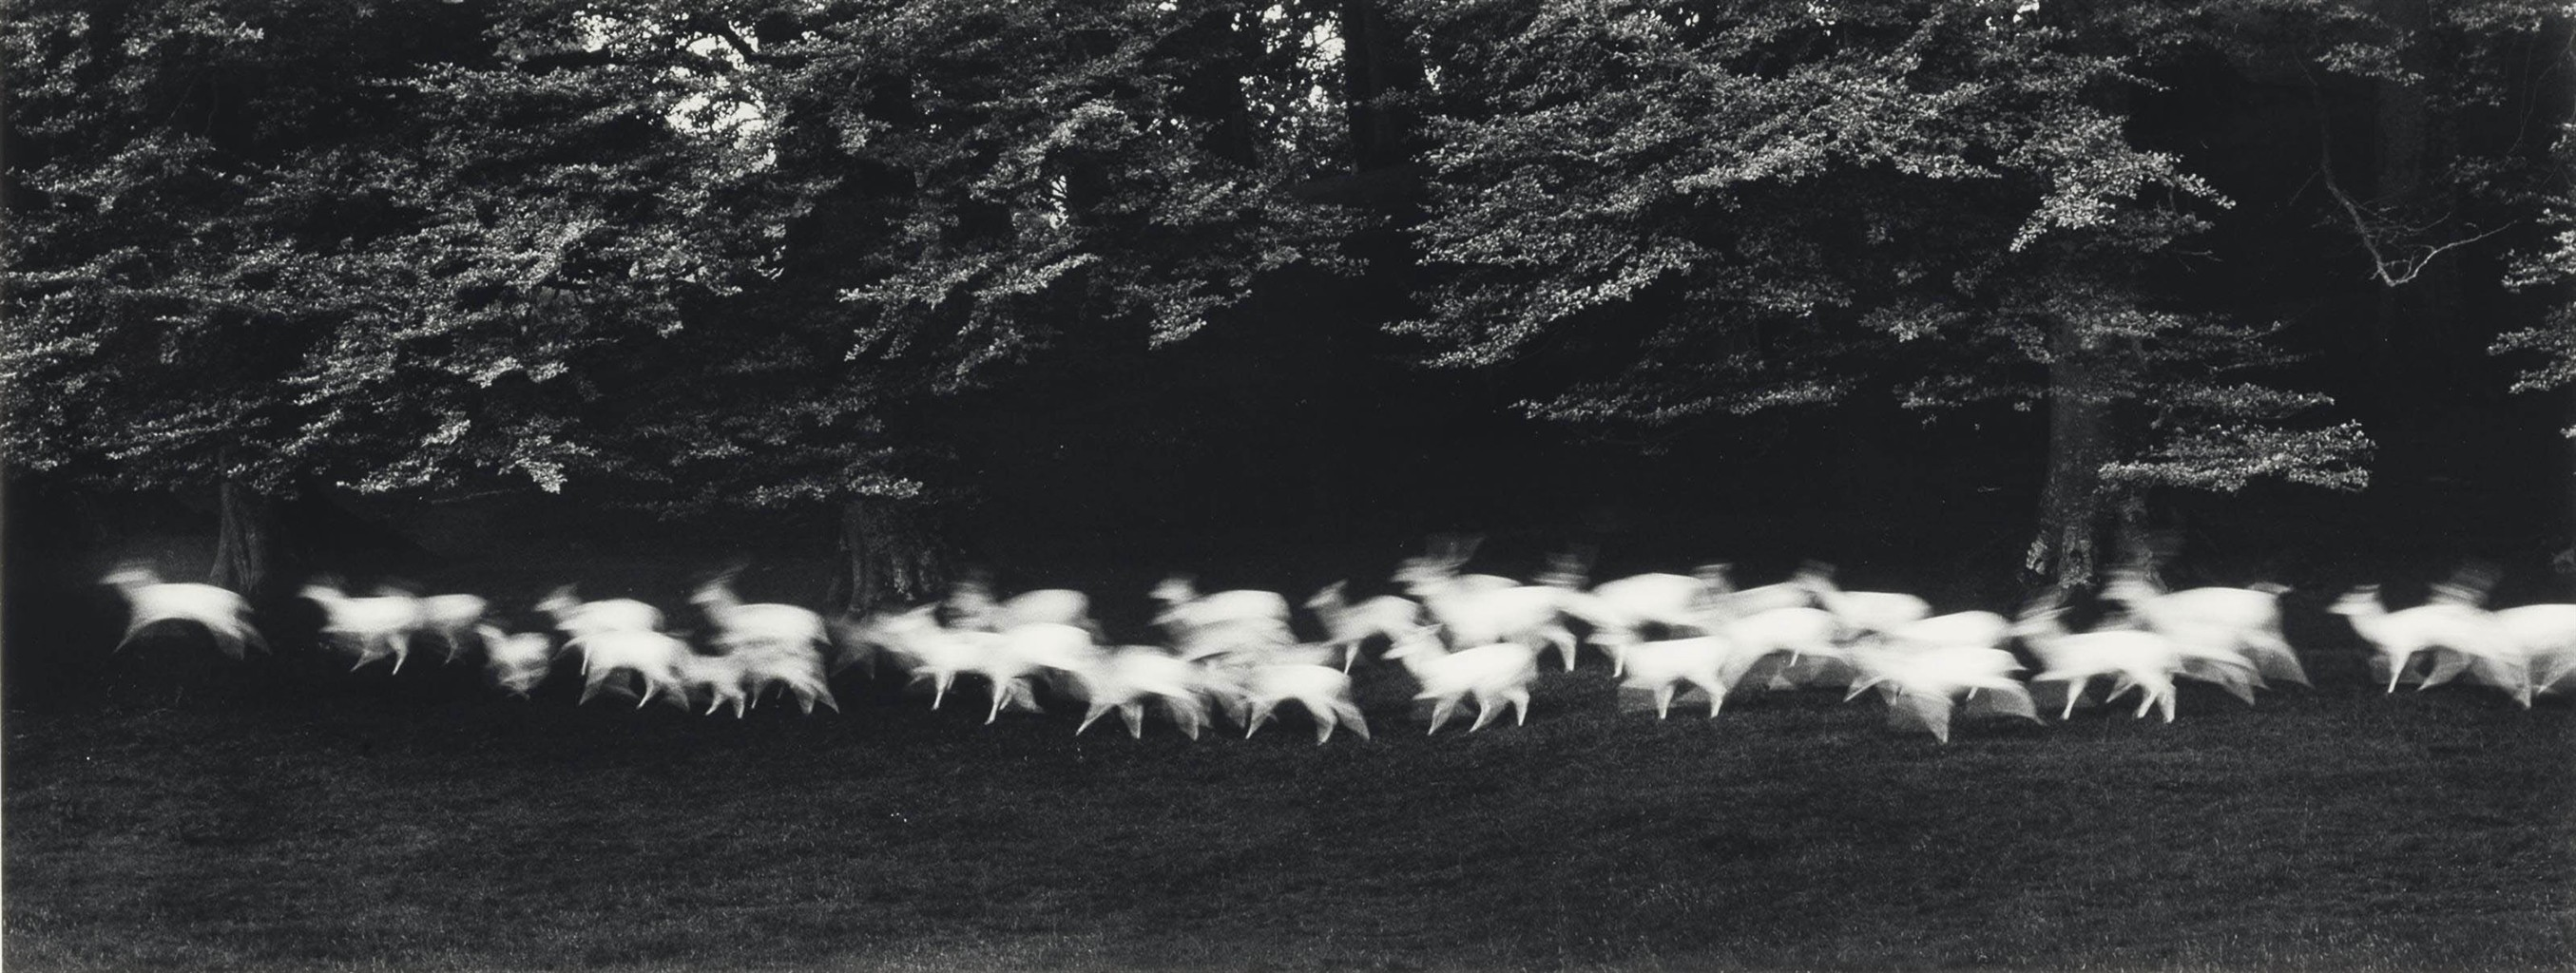 """Amy Miller Photography paul caponigro's """"running white deer, county wicklow"""